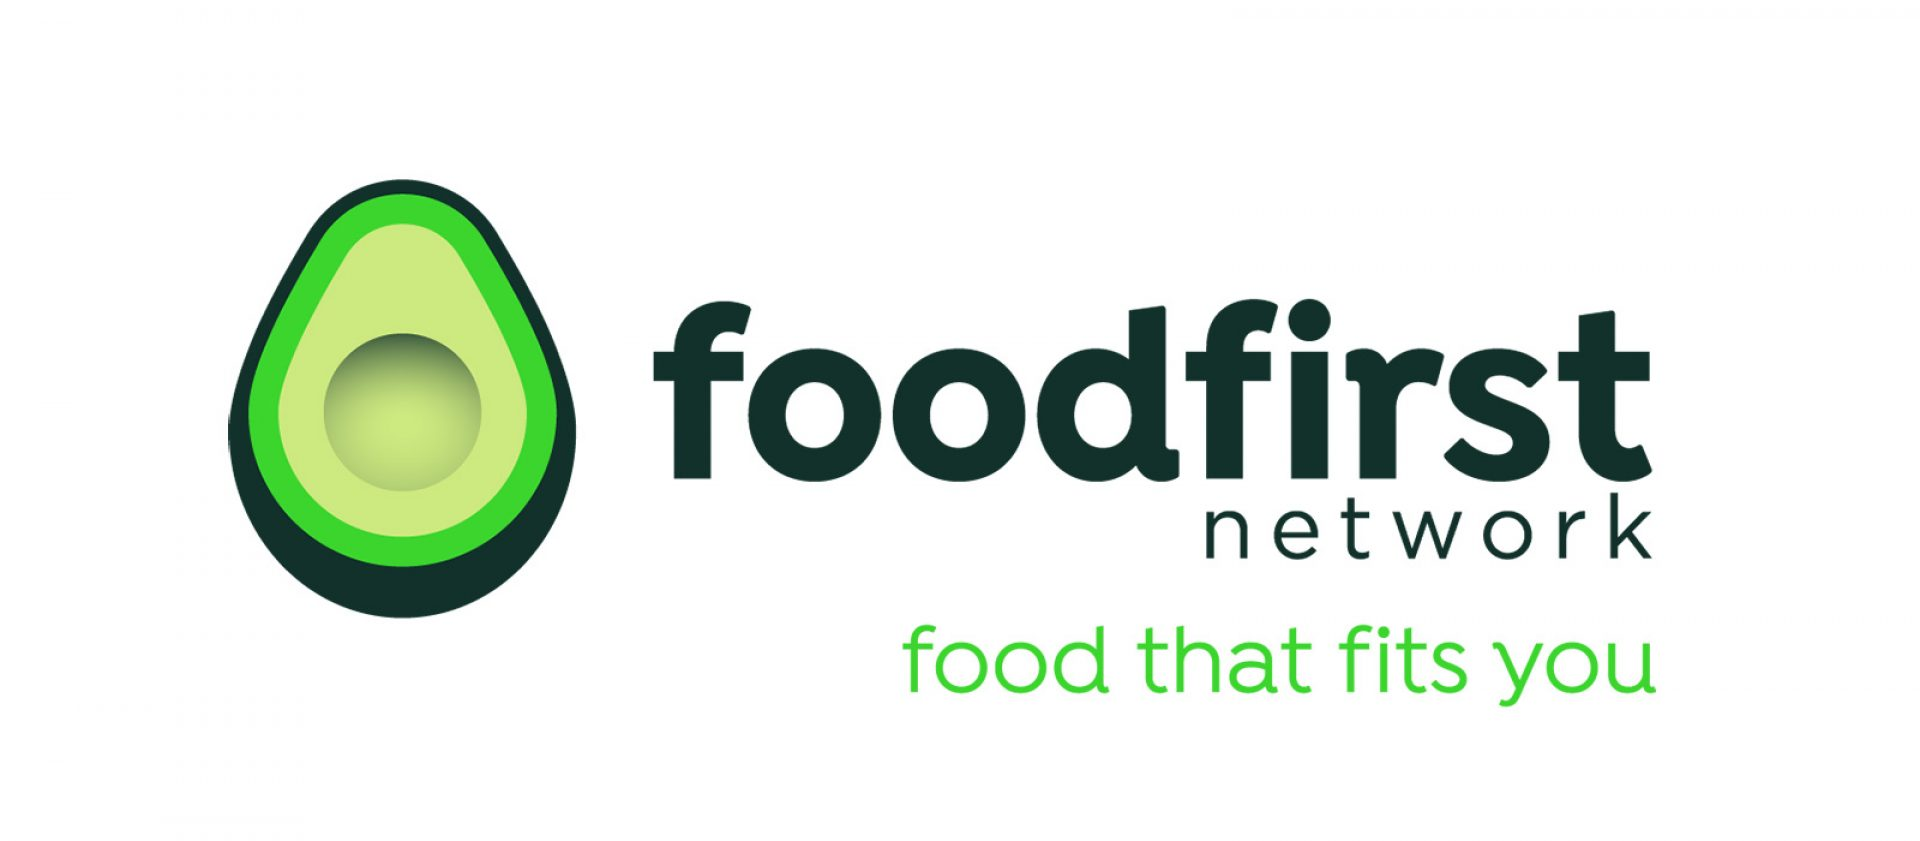 Creating a food and lifestyle platform to revolutionise health.